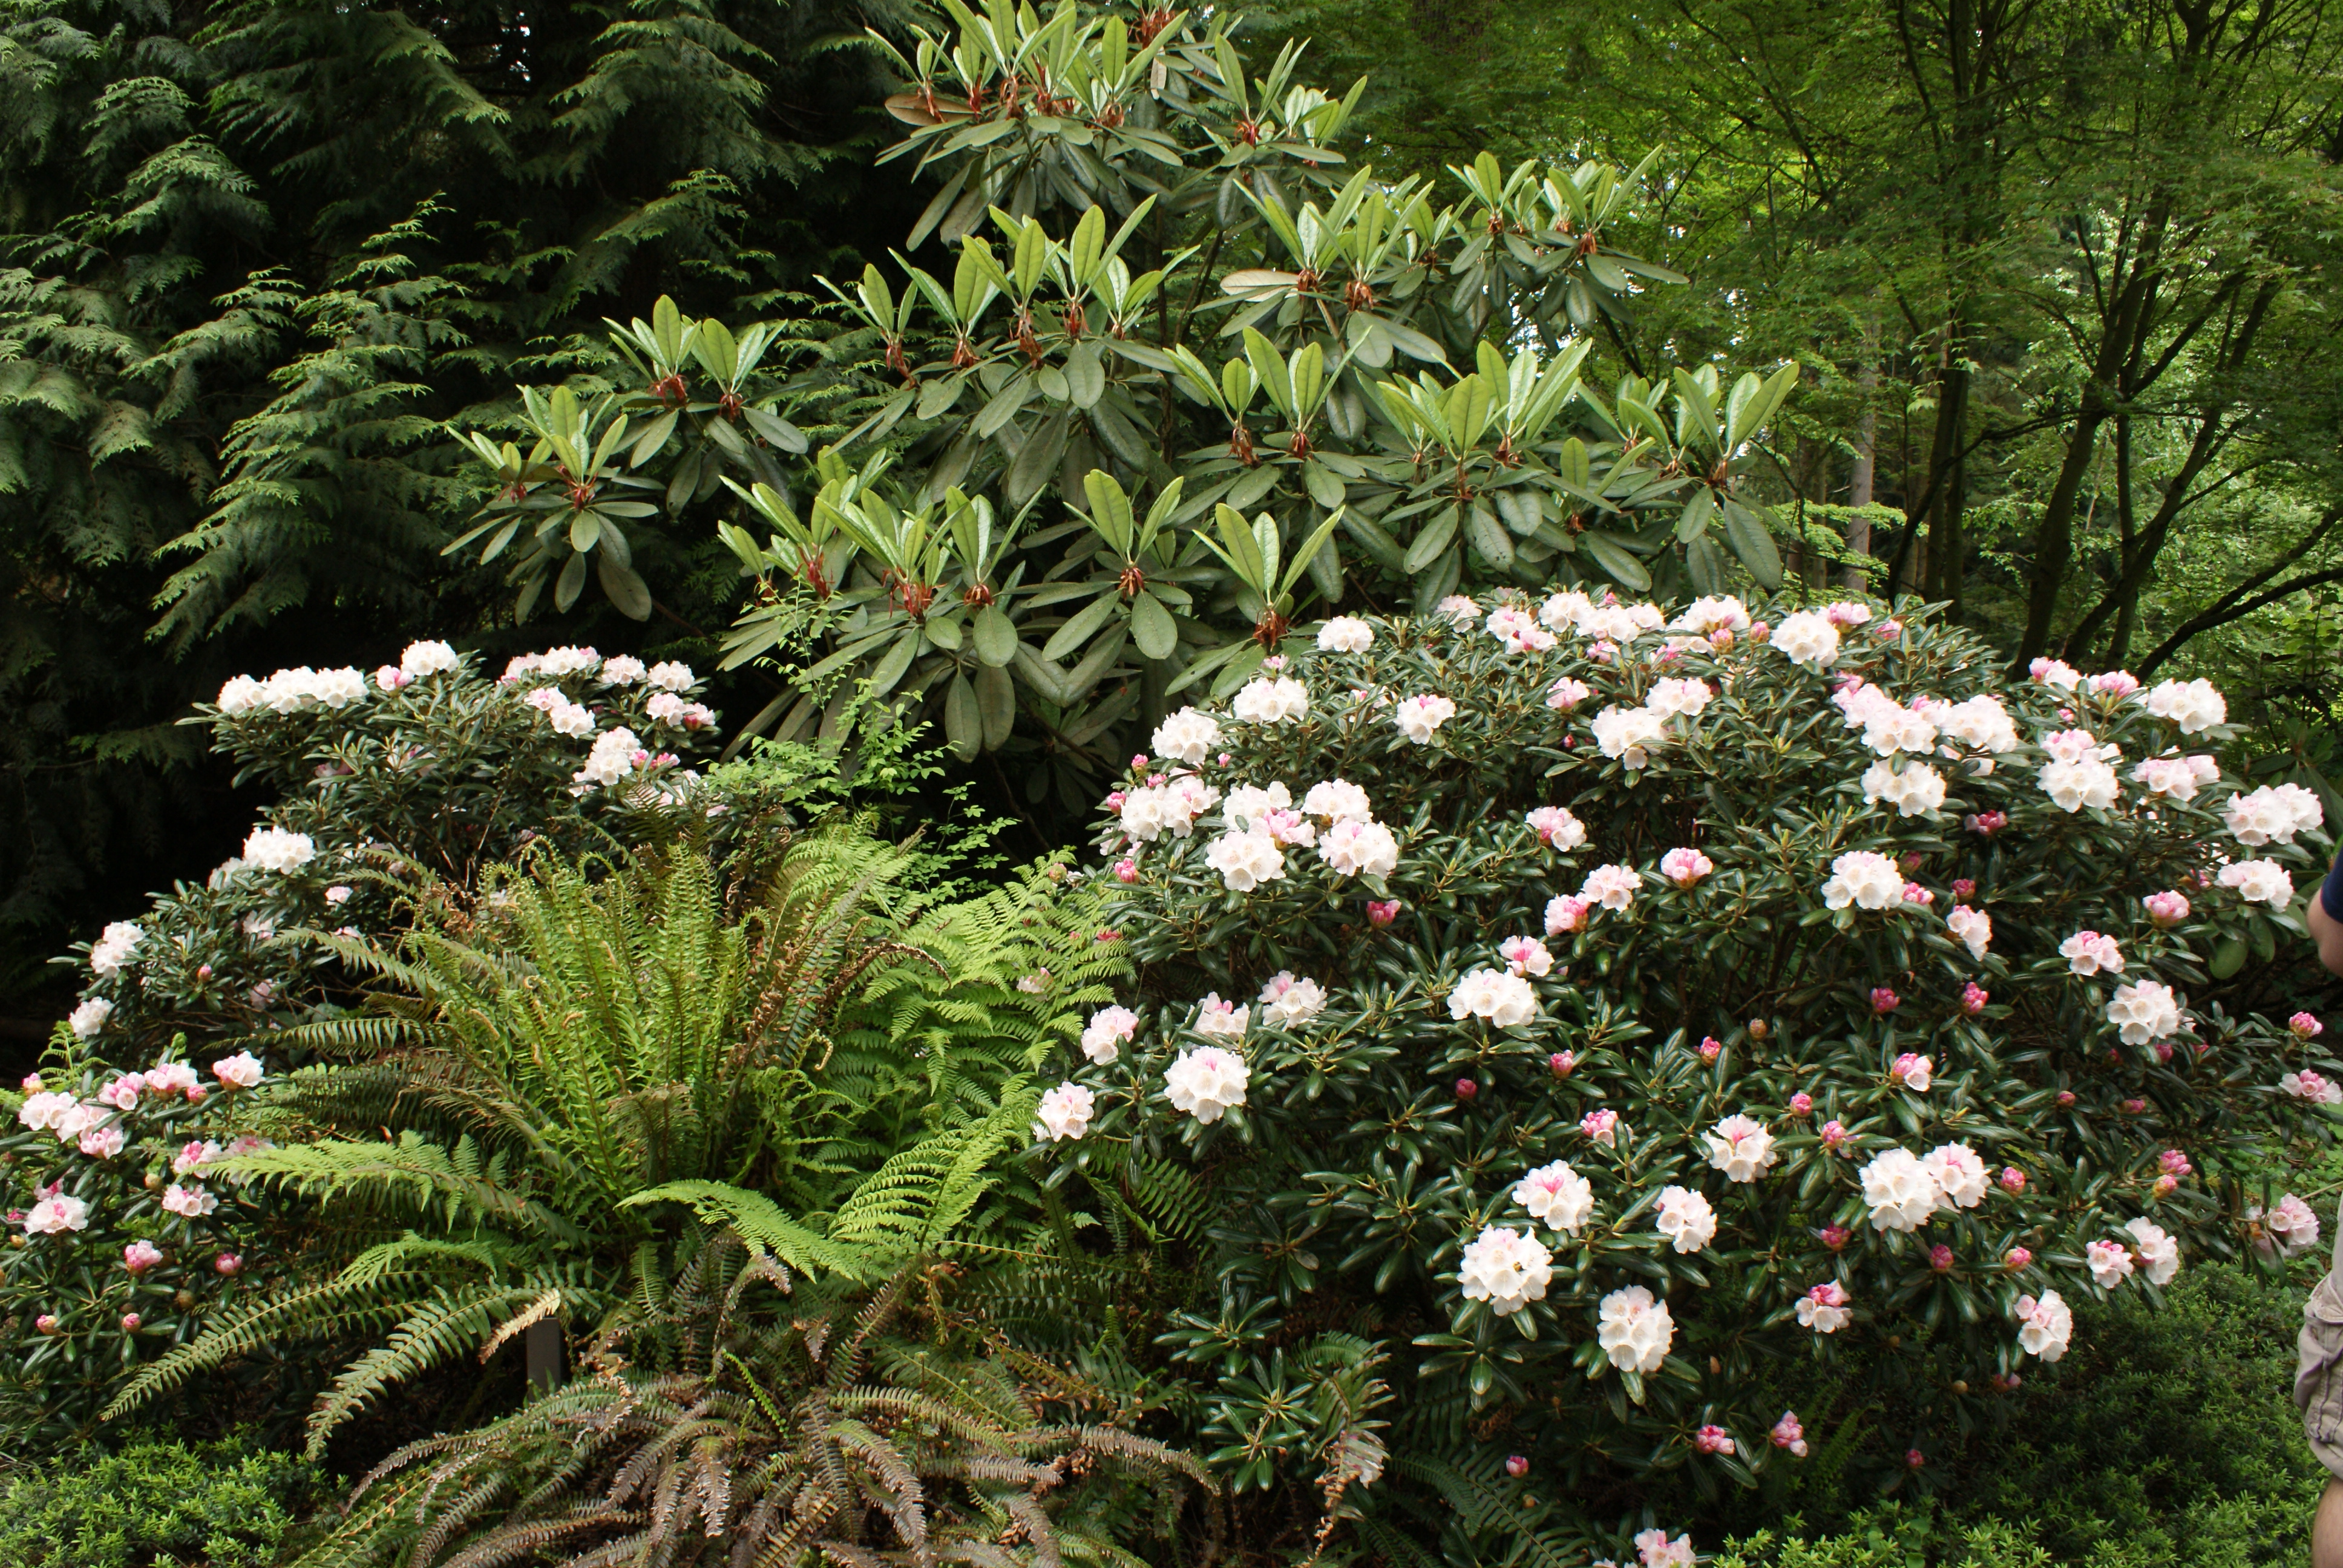 rhododendron species botanical garden, nature walks with kids, puget sound gardens